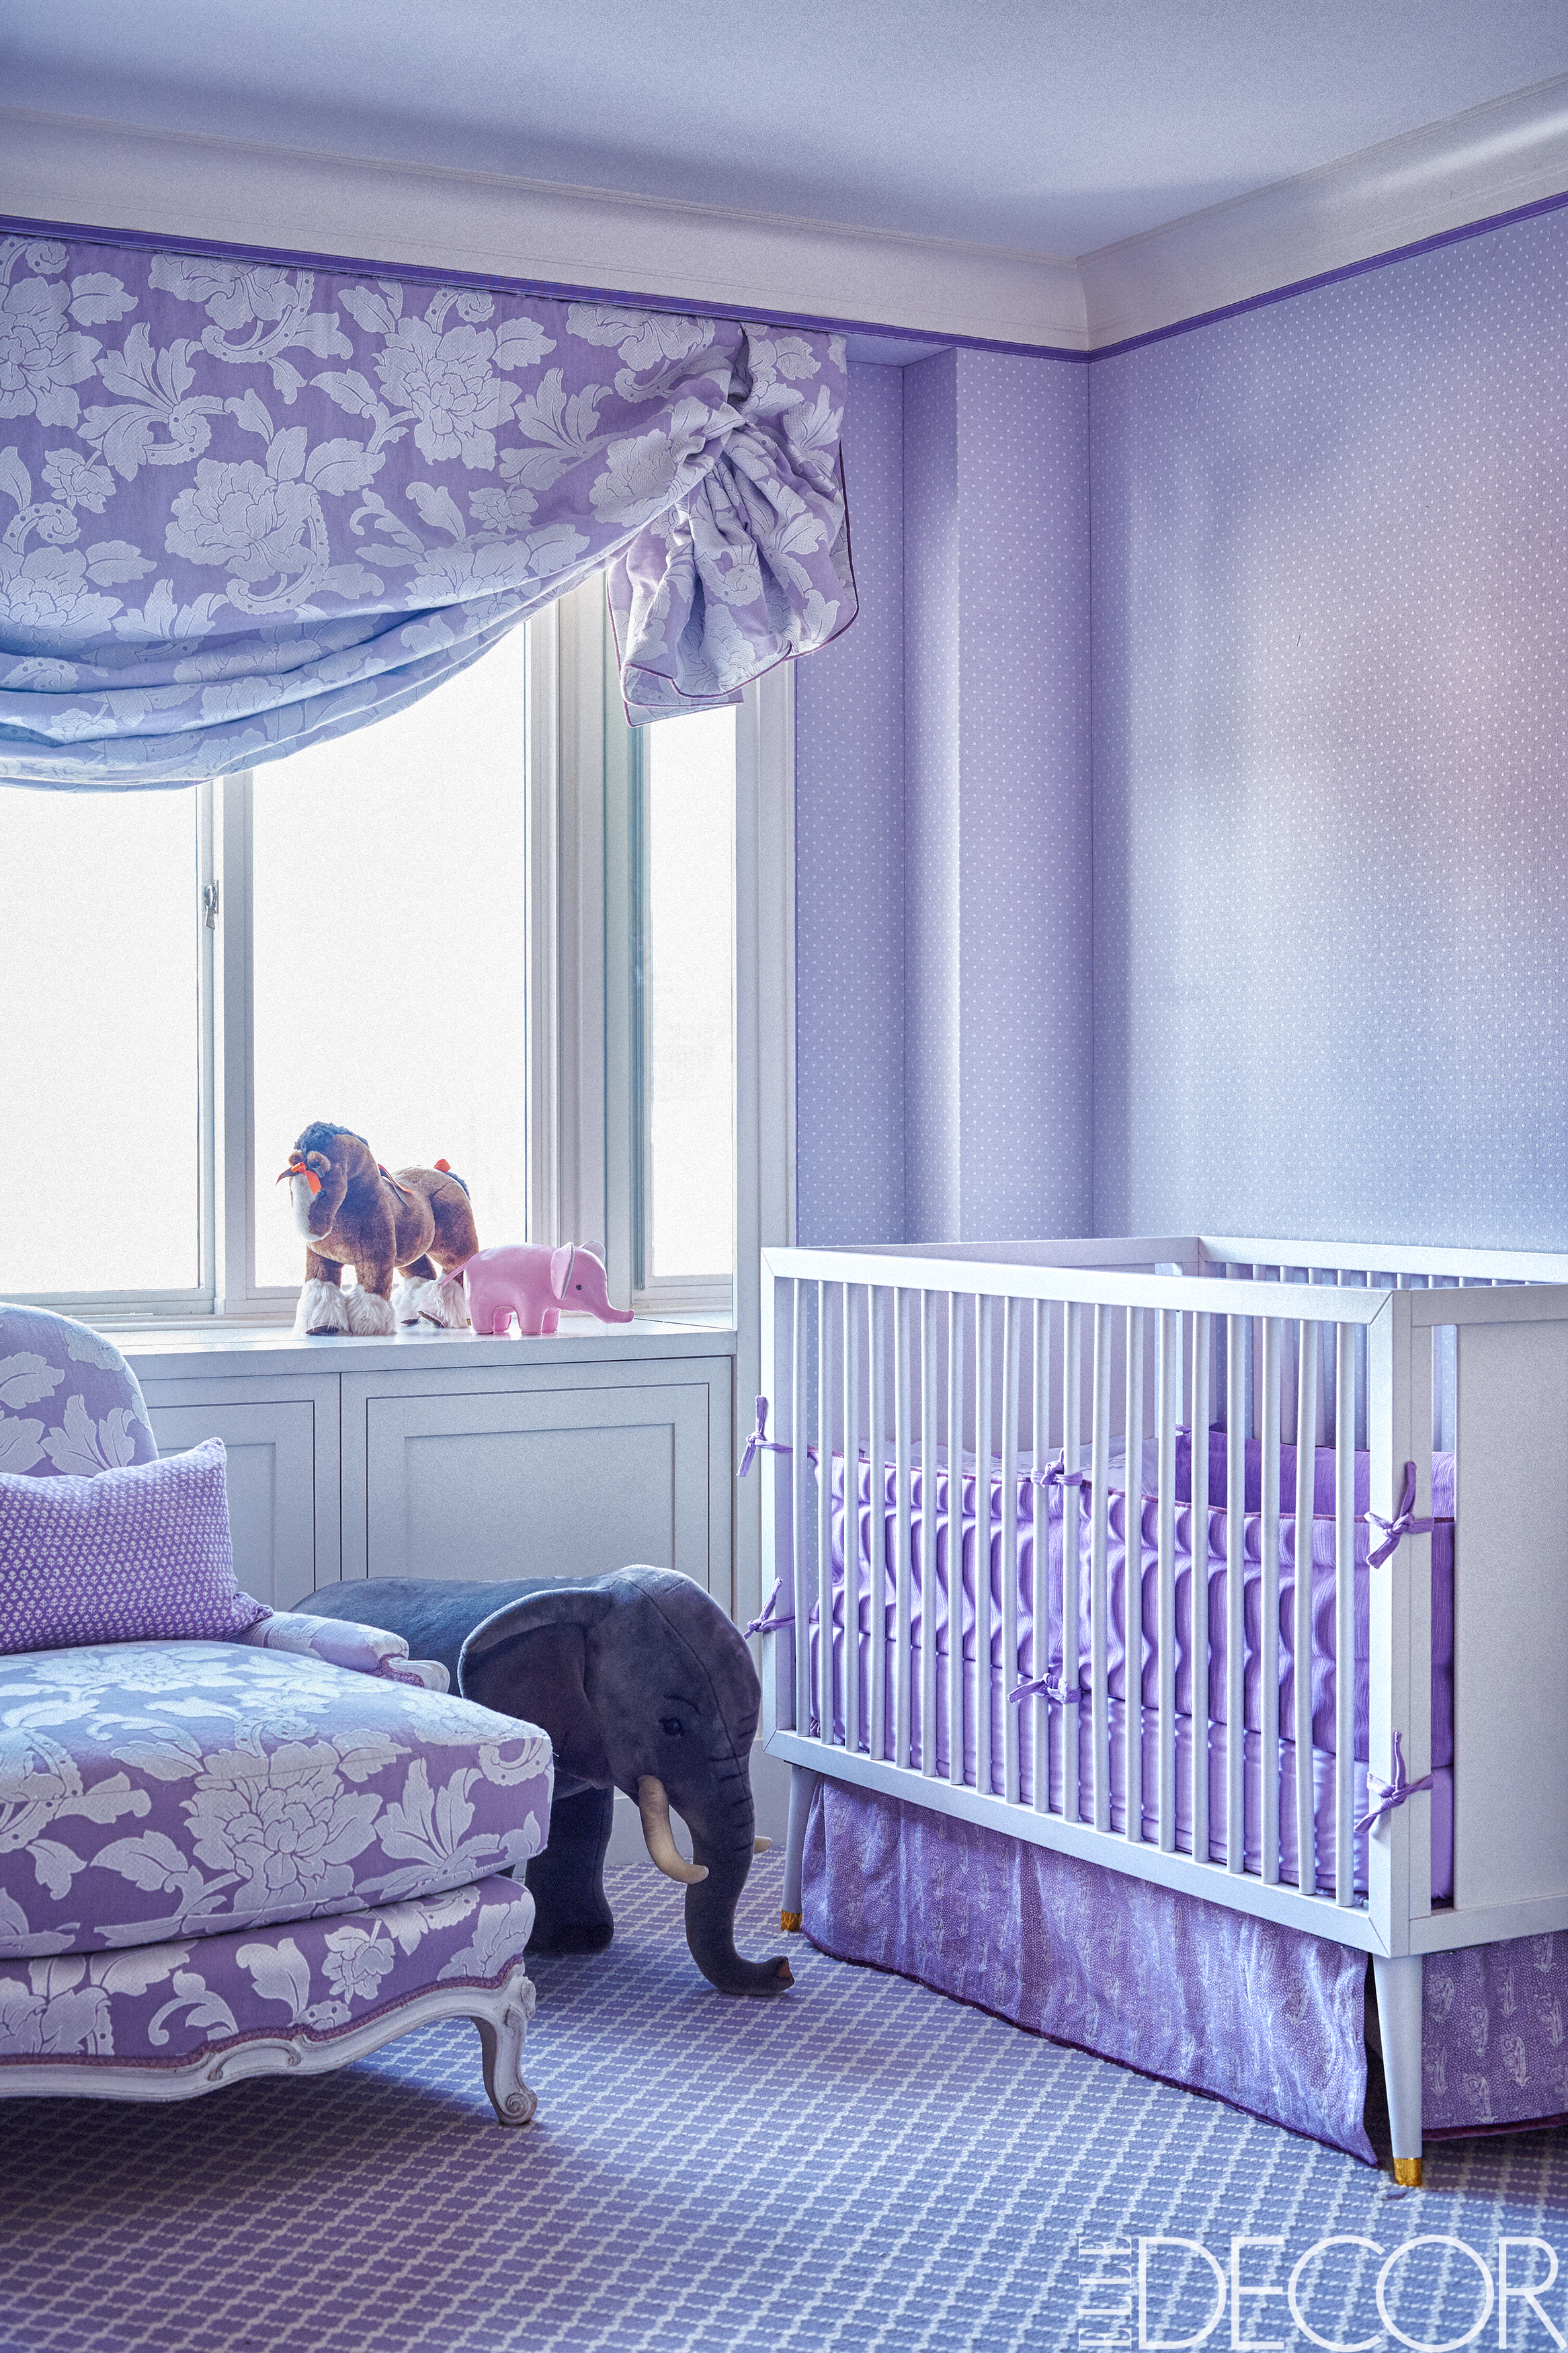 Baby Room Accessories: Nursery Decorating Furniture & Decor